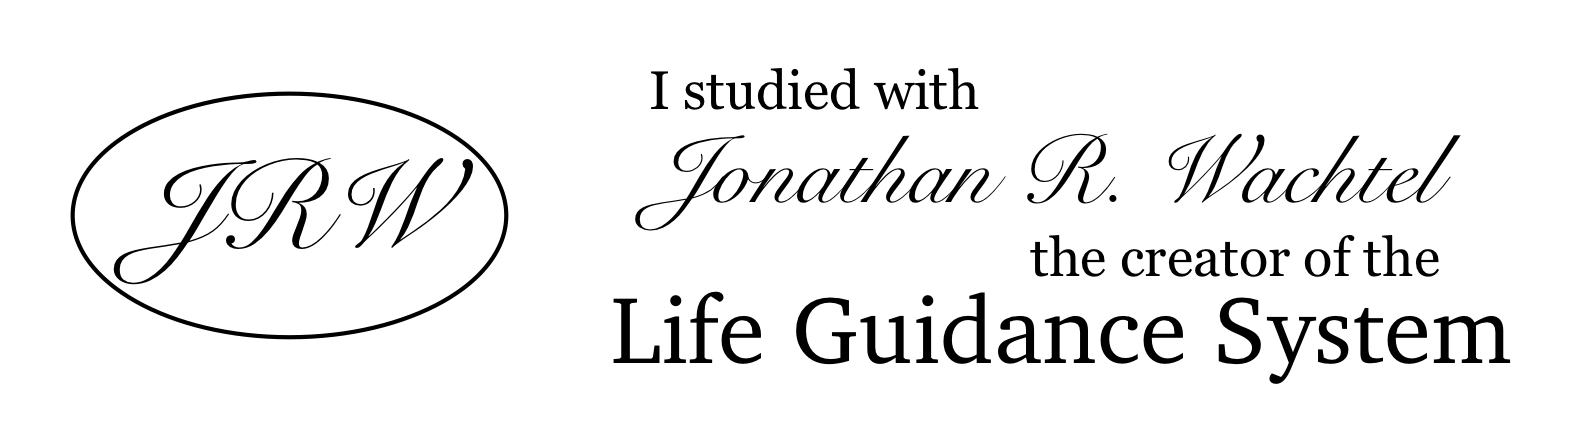 I studied with Jonathan R. Wachtel, creator of the JRW Life Guidance System